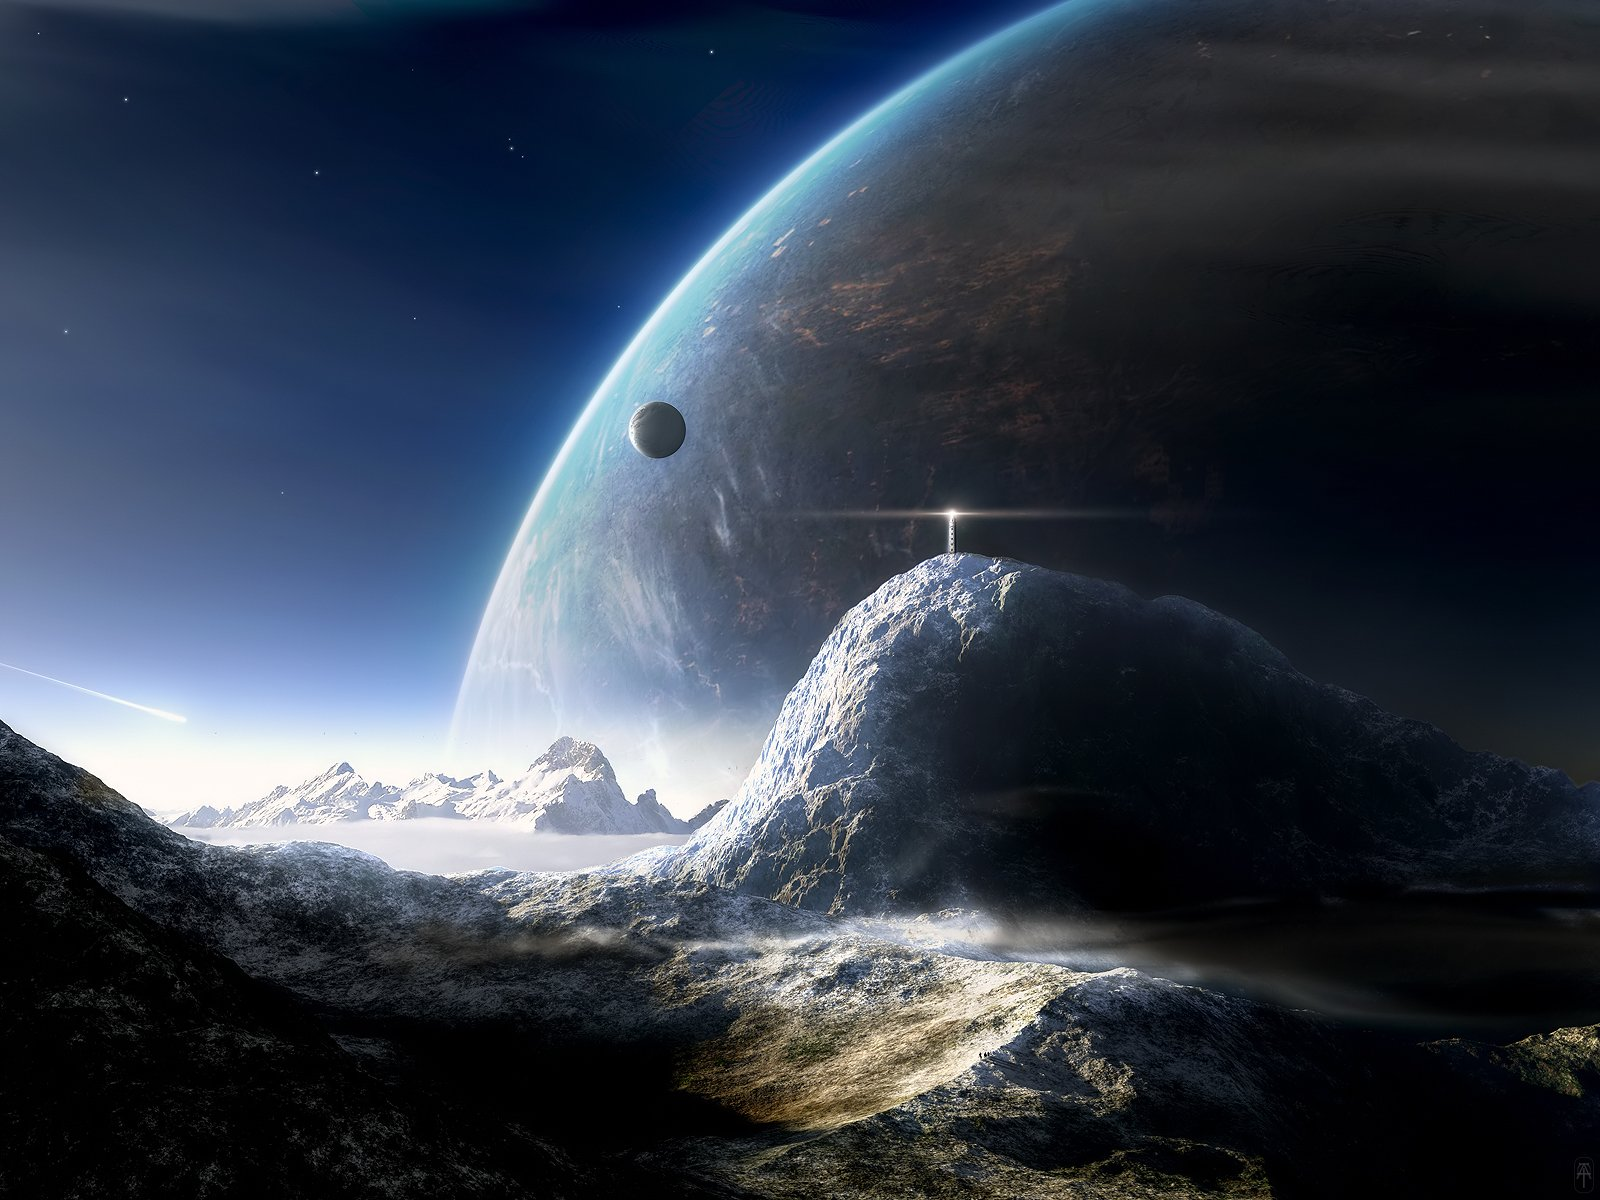 space wallpaper high resolution which is under the space wallpapers 1600x1200